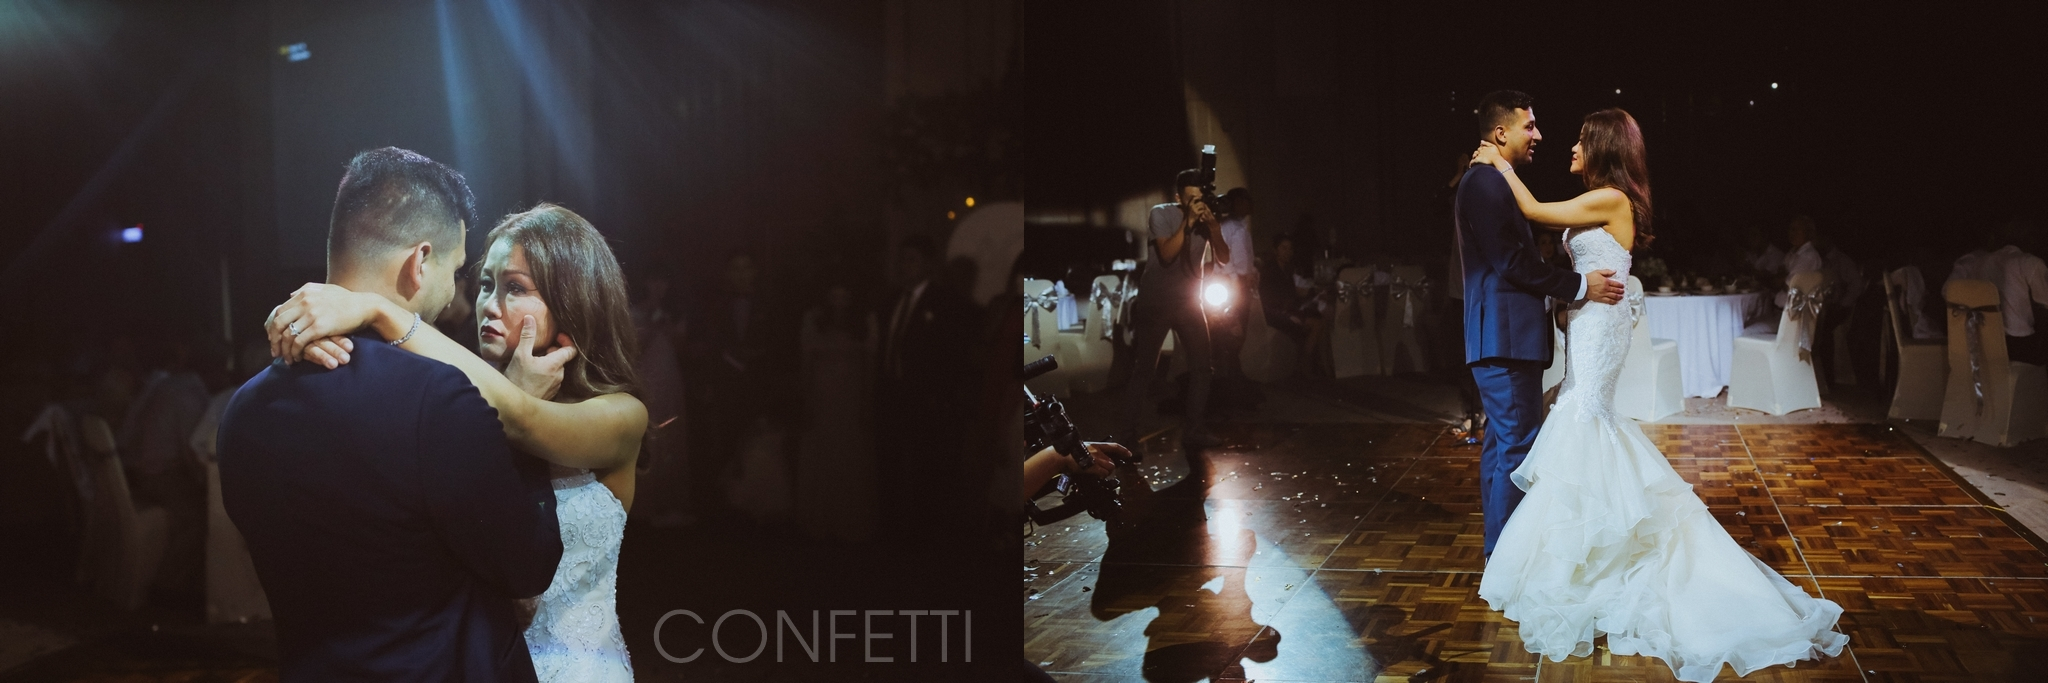 Confetti-real-wedding-Together-we-have-it-all (54)